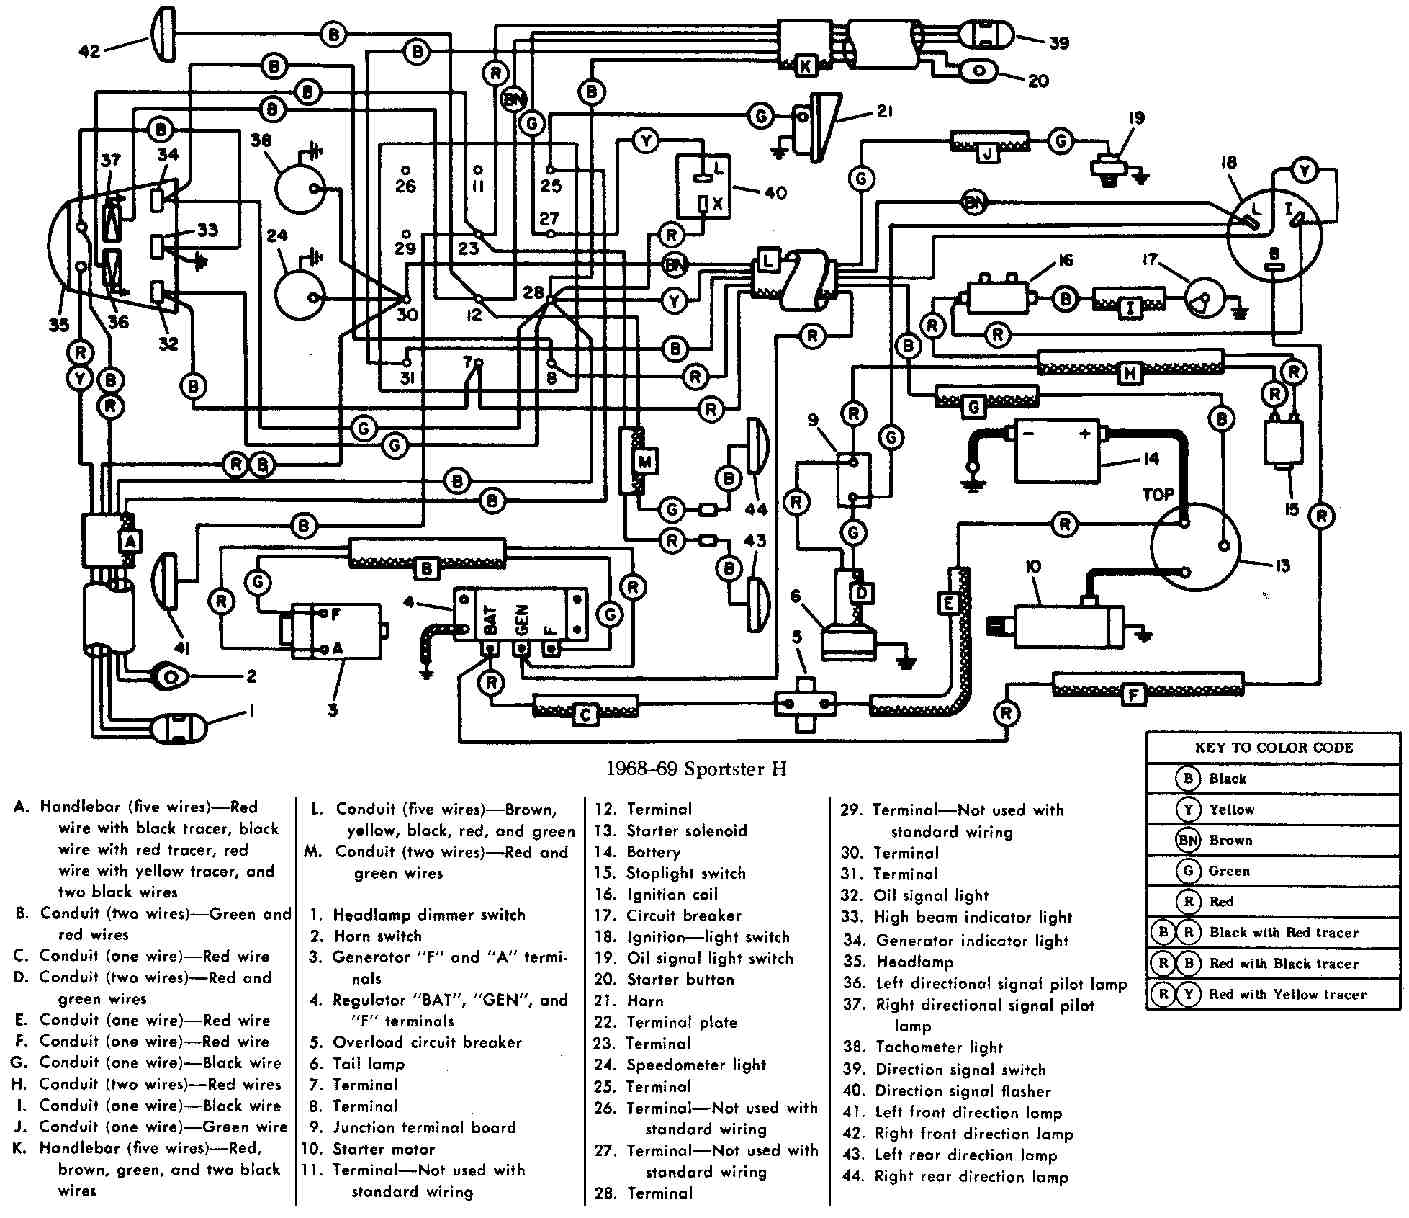 WRG-9159] 1994 Cadillac Deville Speaker Wiring Diagram on